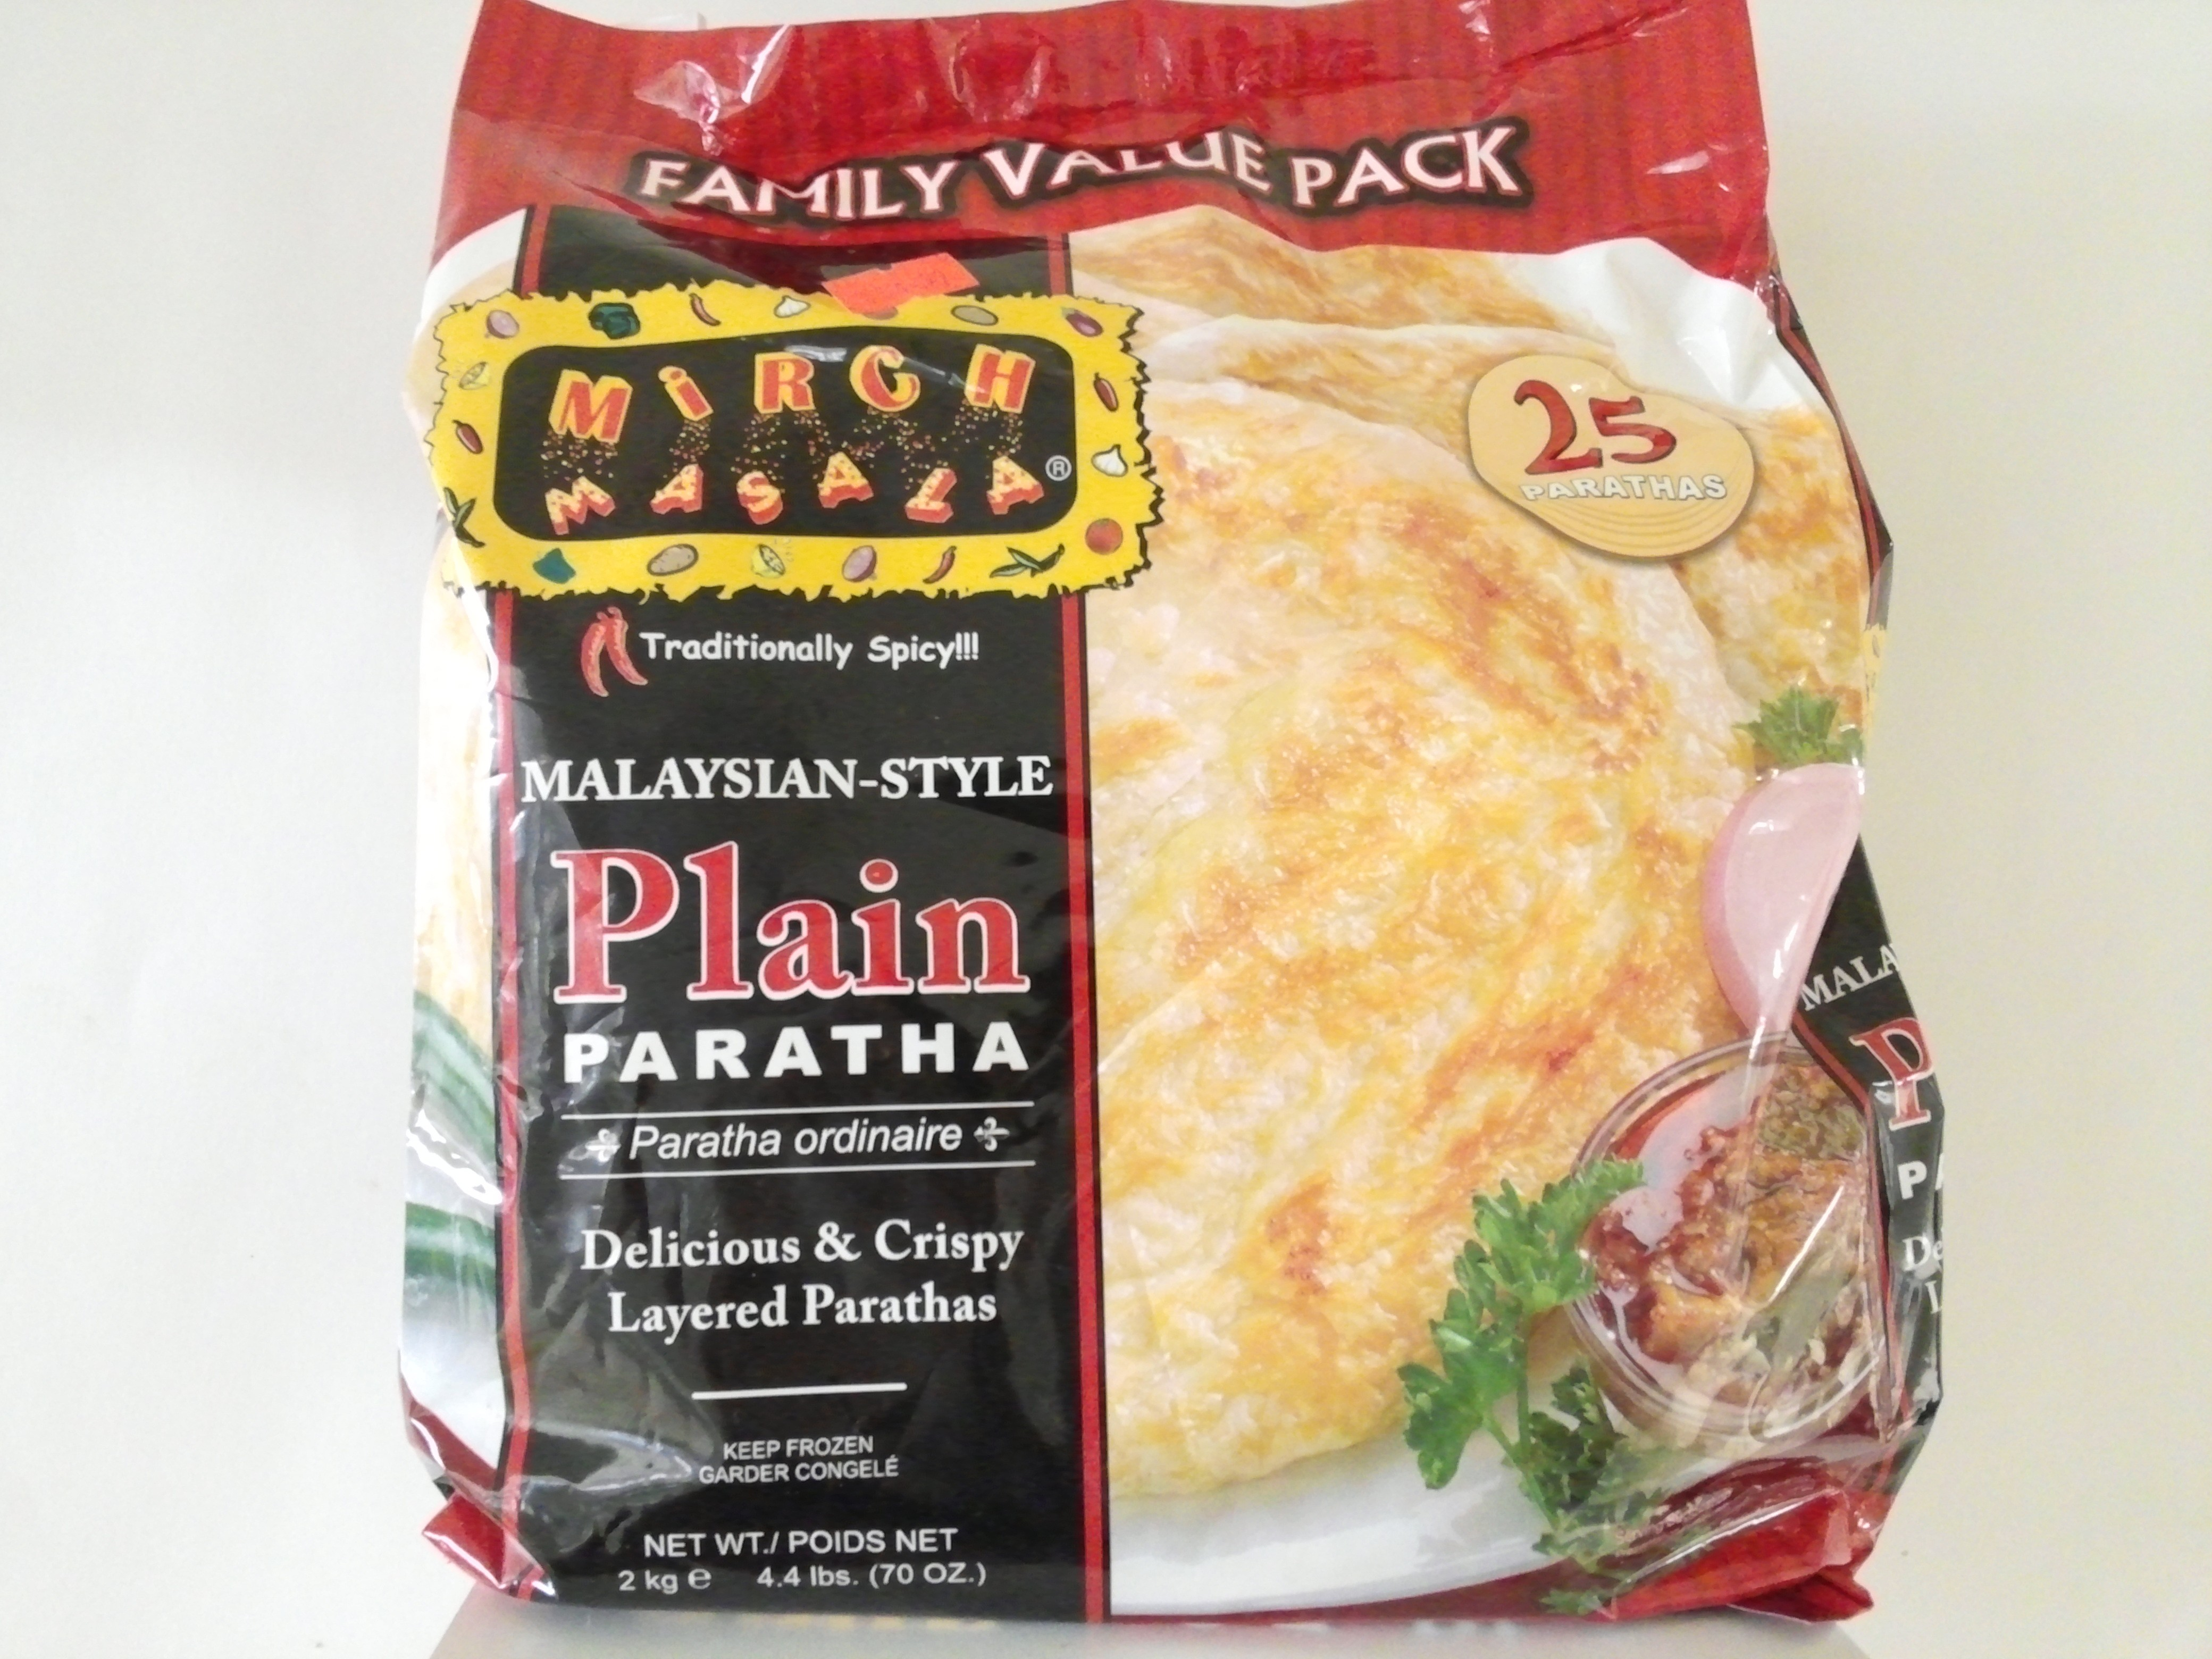 Mirch Masala Plain Paratha (Value Pack) 25 Pcs 70 oz